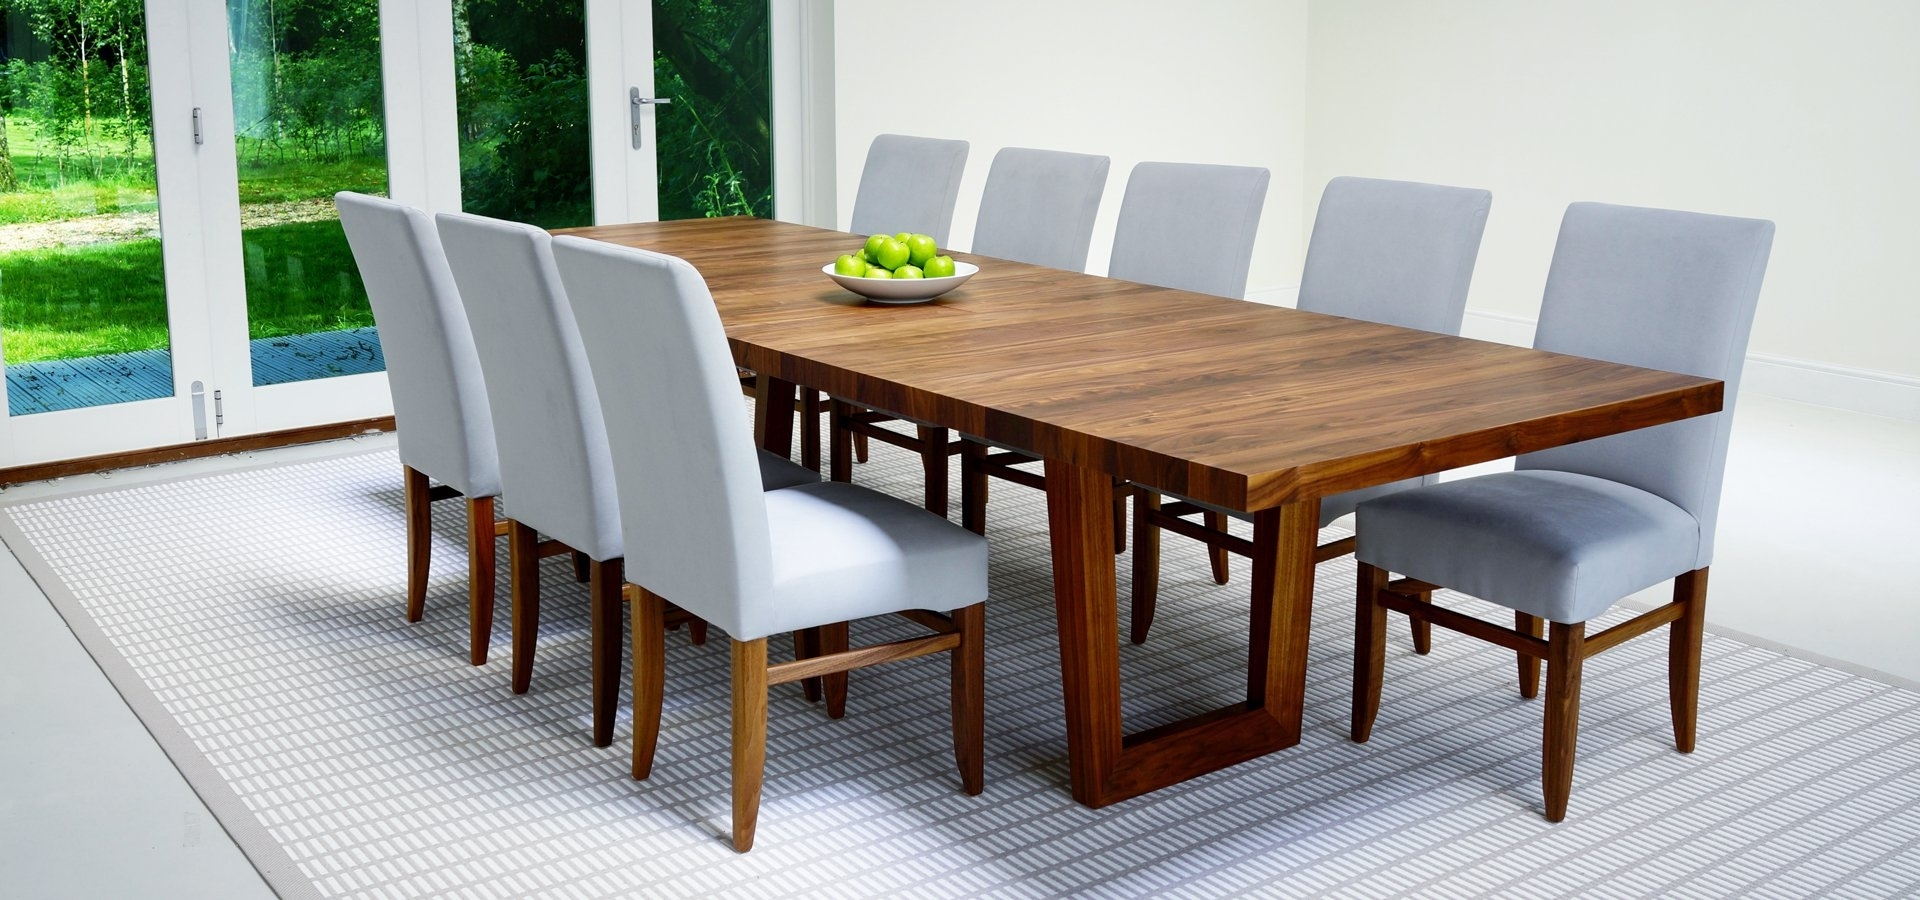 2018 Dining Extending Tables And Chairs with regard to Extending Dining Table Sets Uk - Castrophotos